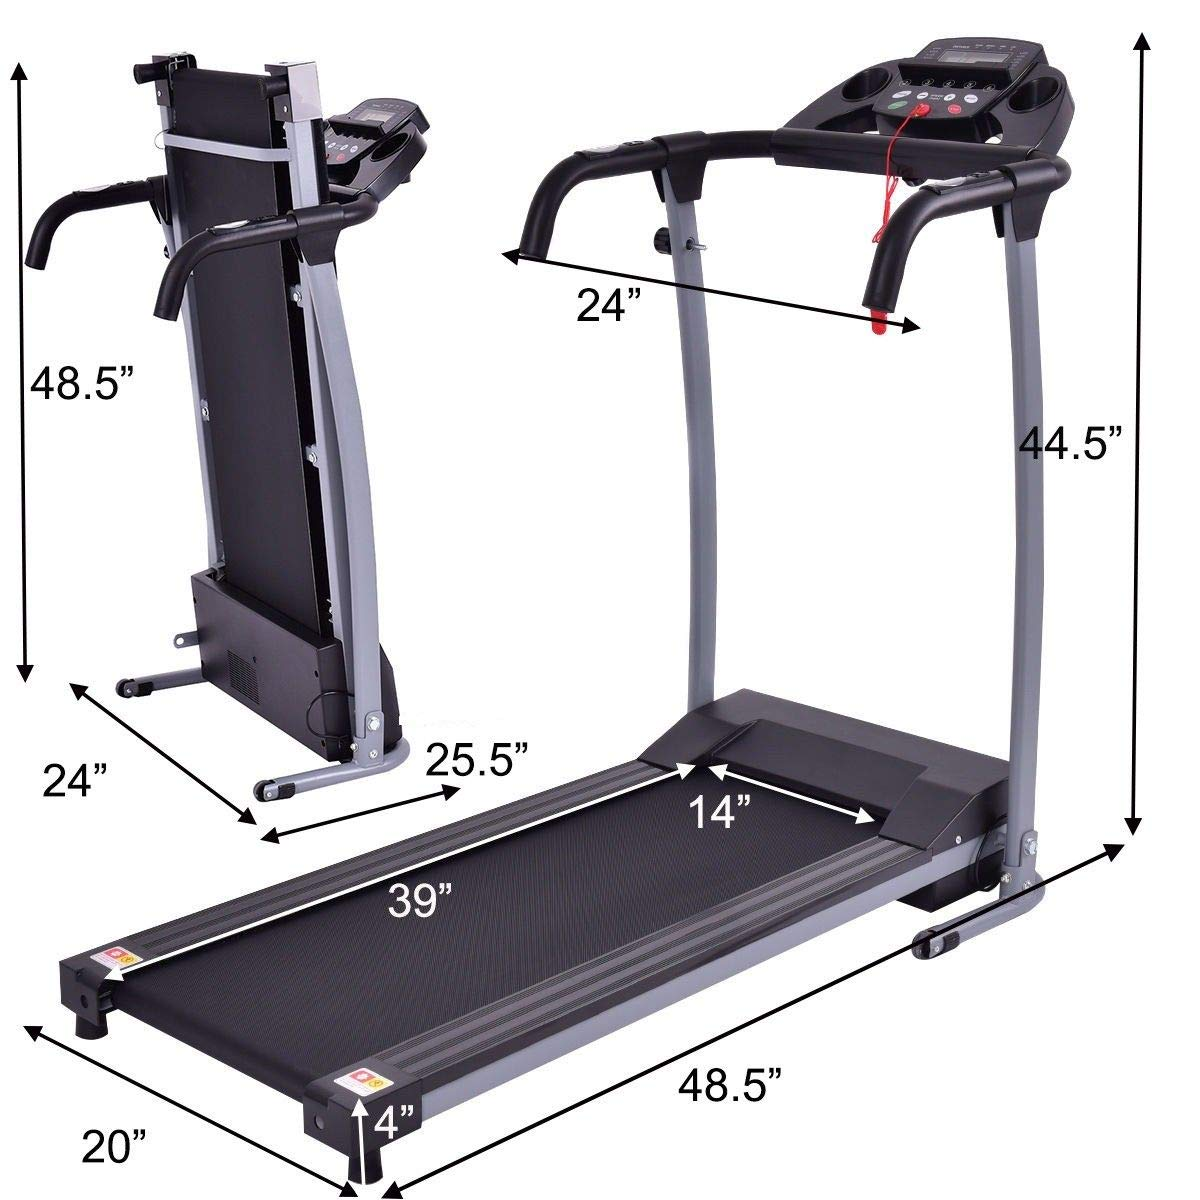 Goplus 800W Folding Treadmill Electric Motorized Power Fitness Running Machine with LED Display and Mobile Phone Holder Perfect for Home Use (Black) by Goplus (Image #7)